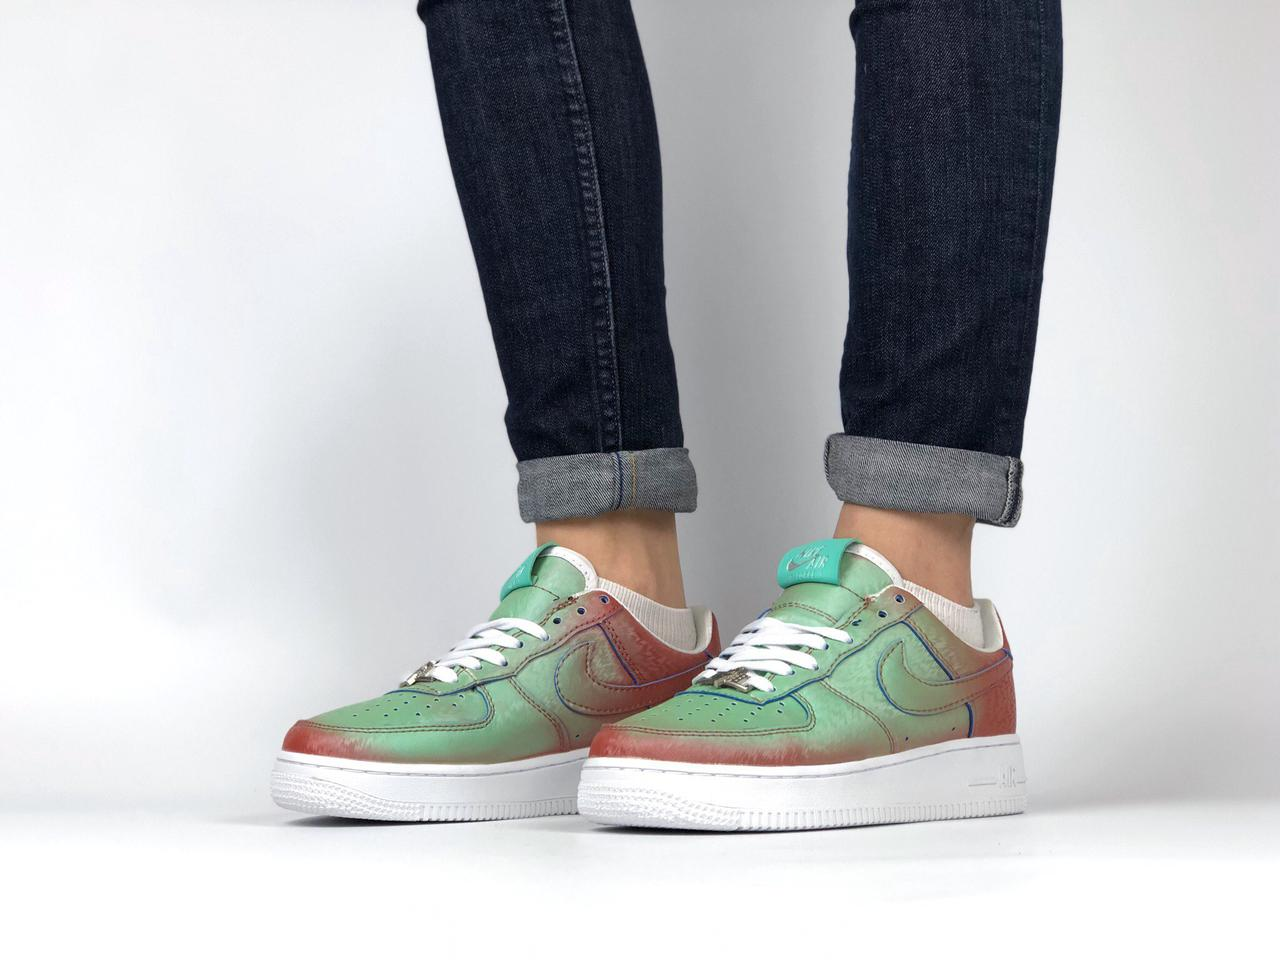 32c6f8d7 Кроссовки Nike Air Force 1 Preserved Icons / Lady Liberty (ТОП РЕПЛИКА ААА+)